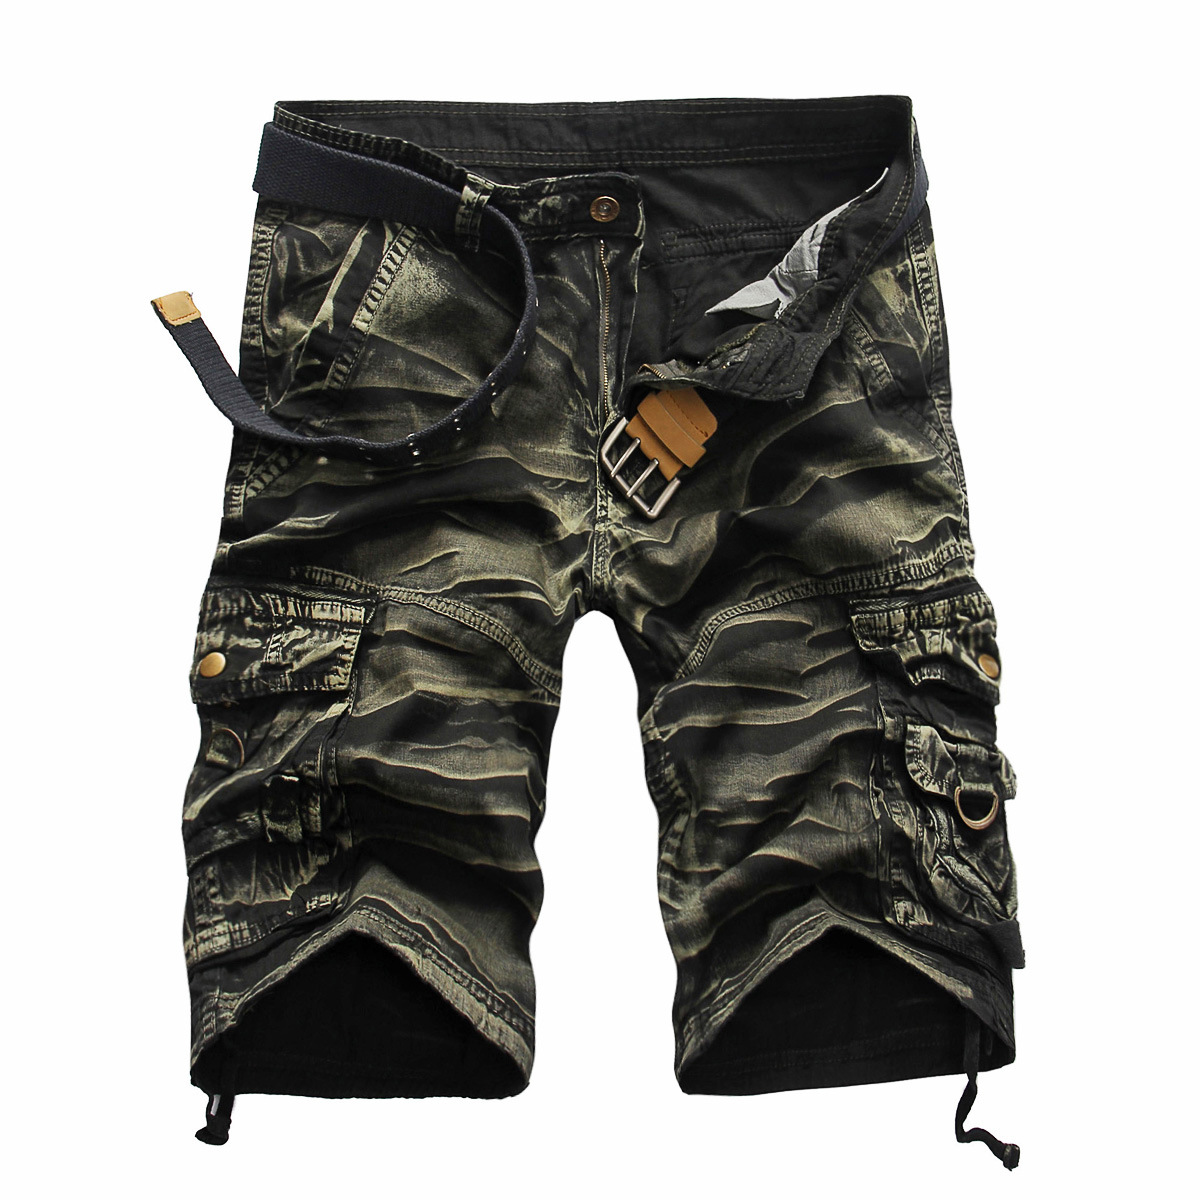 2018 Cargo Shorts Men Hot Sale Casual Camouflage Summer Brand Clothing Cotton Male Fashion Army Work Shorts Men Plus Size 29-38